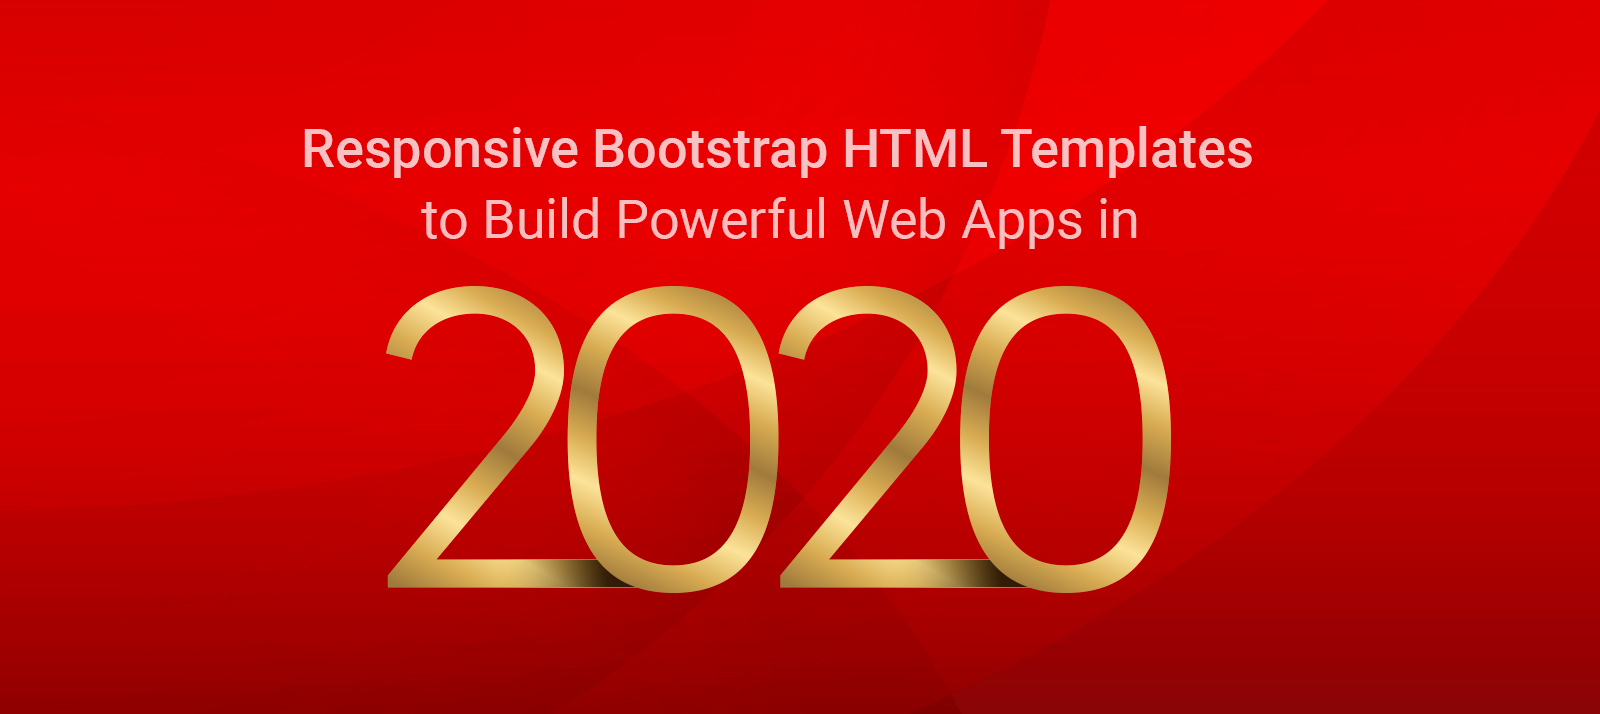 Responsive Bootstrap HTML Templates to Build Powerful Web Apps in 2020